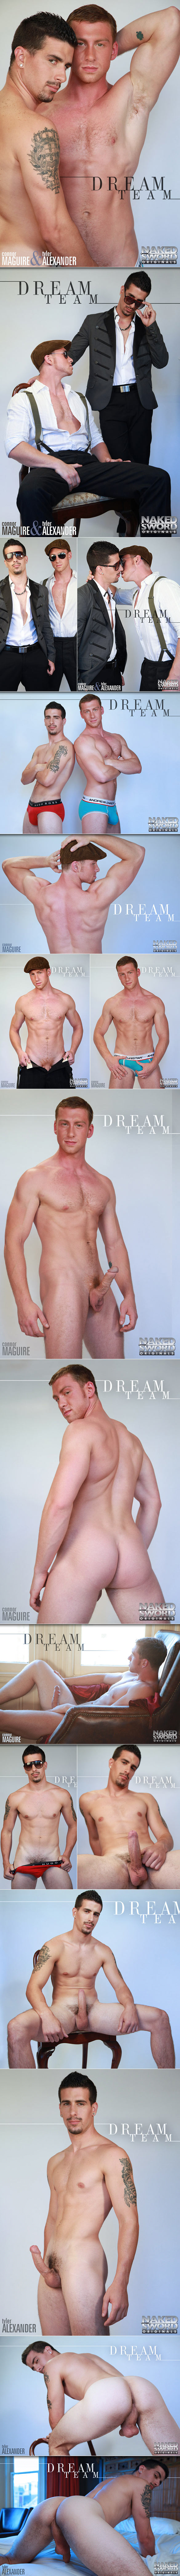 "Naked Sword Originals: Connor Maguire bangs Tyler Alexander in ""Dream Team: Ep. 4"""